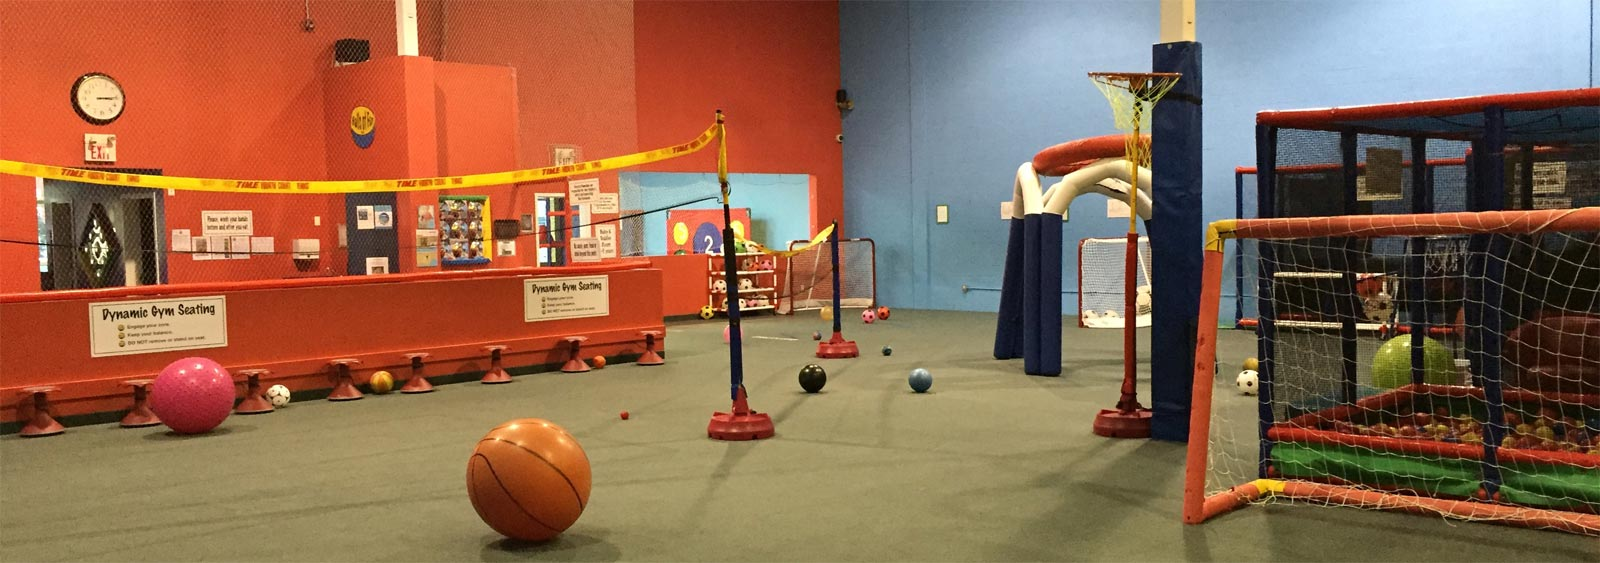 indoor playground in mississauga